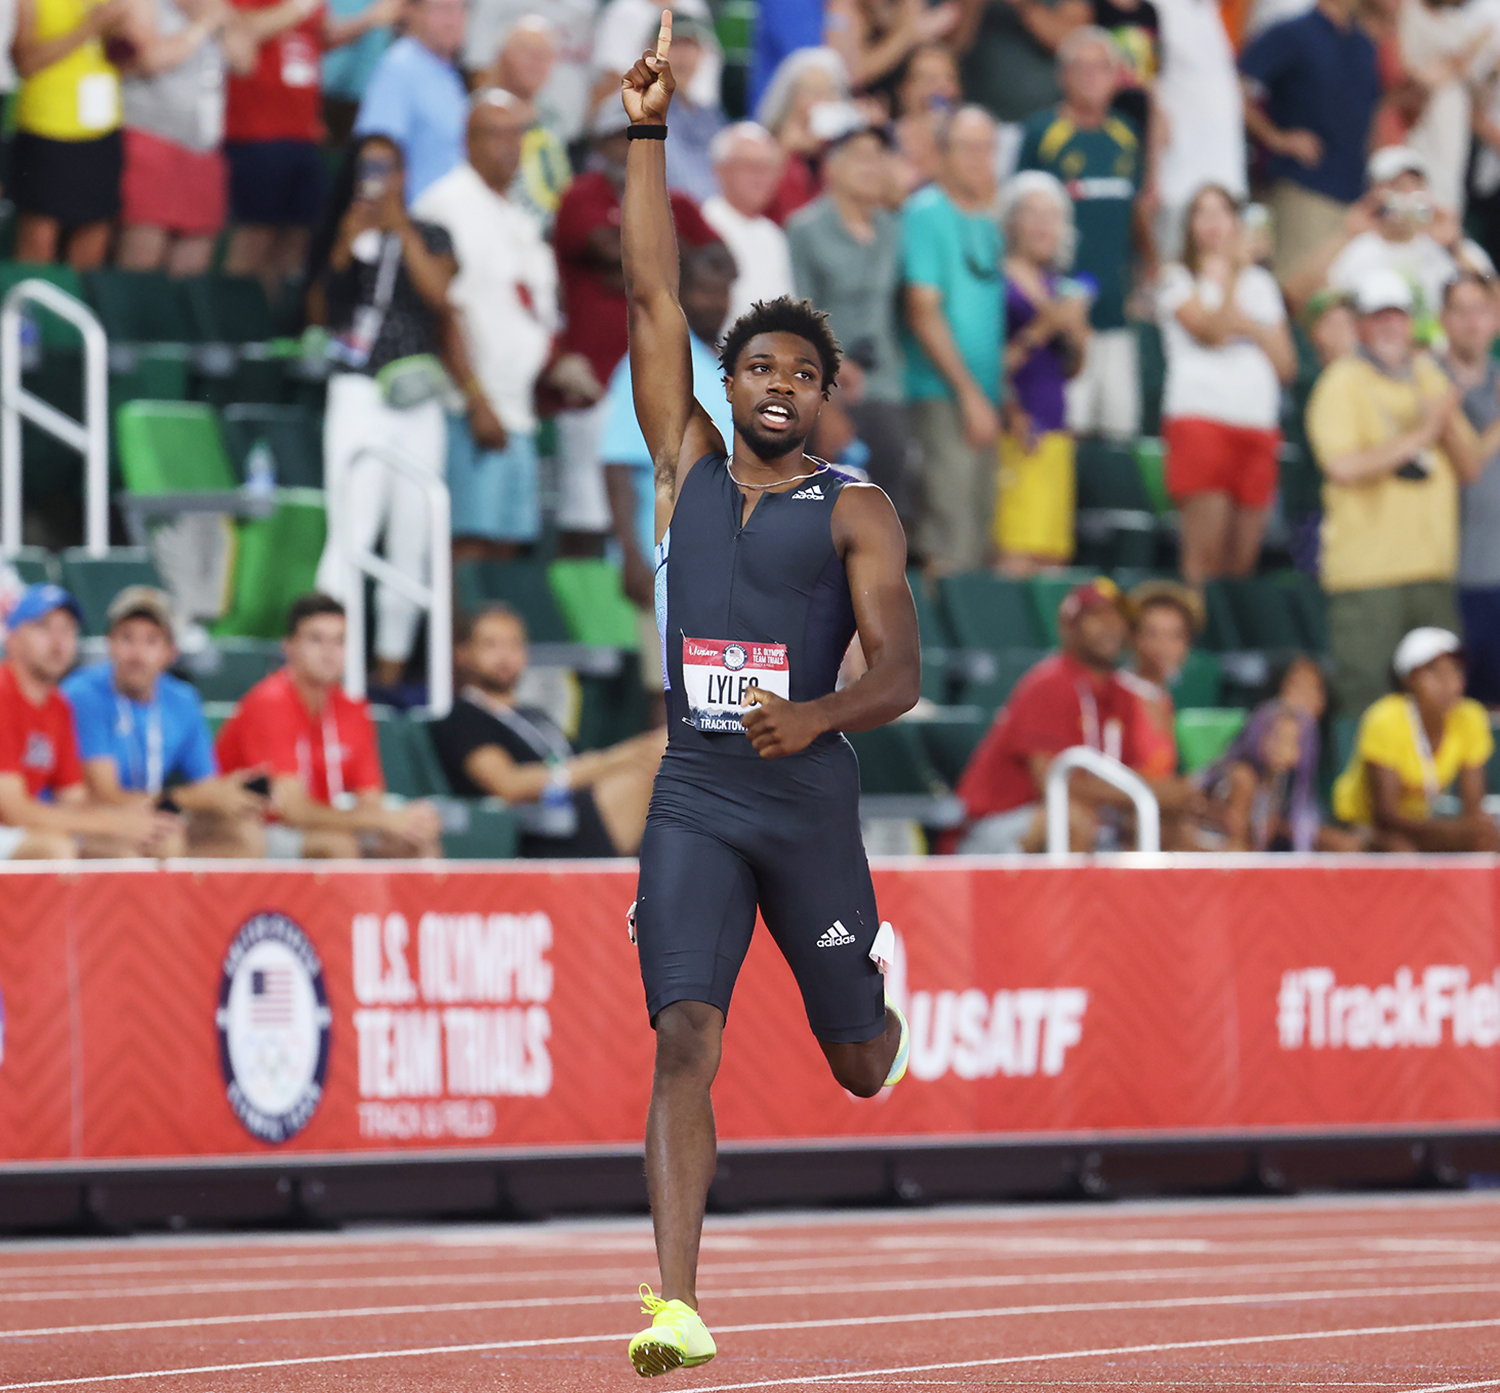 Noah Lyles winning the Men's 200 Meter Final during day ten of the 2020 U.S. Olympic Track & Field Team Trials in Eugene, Oregon.